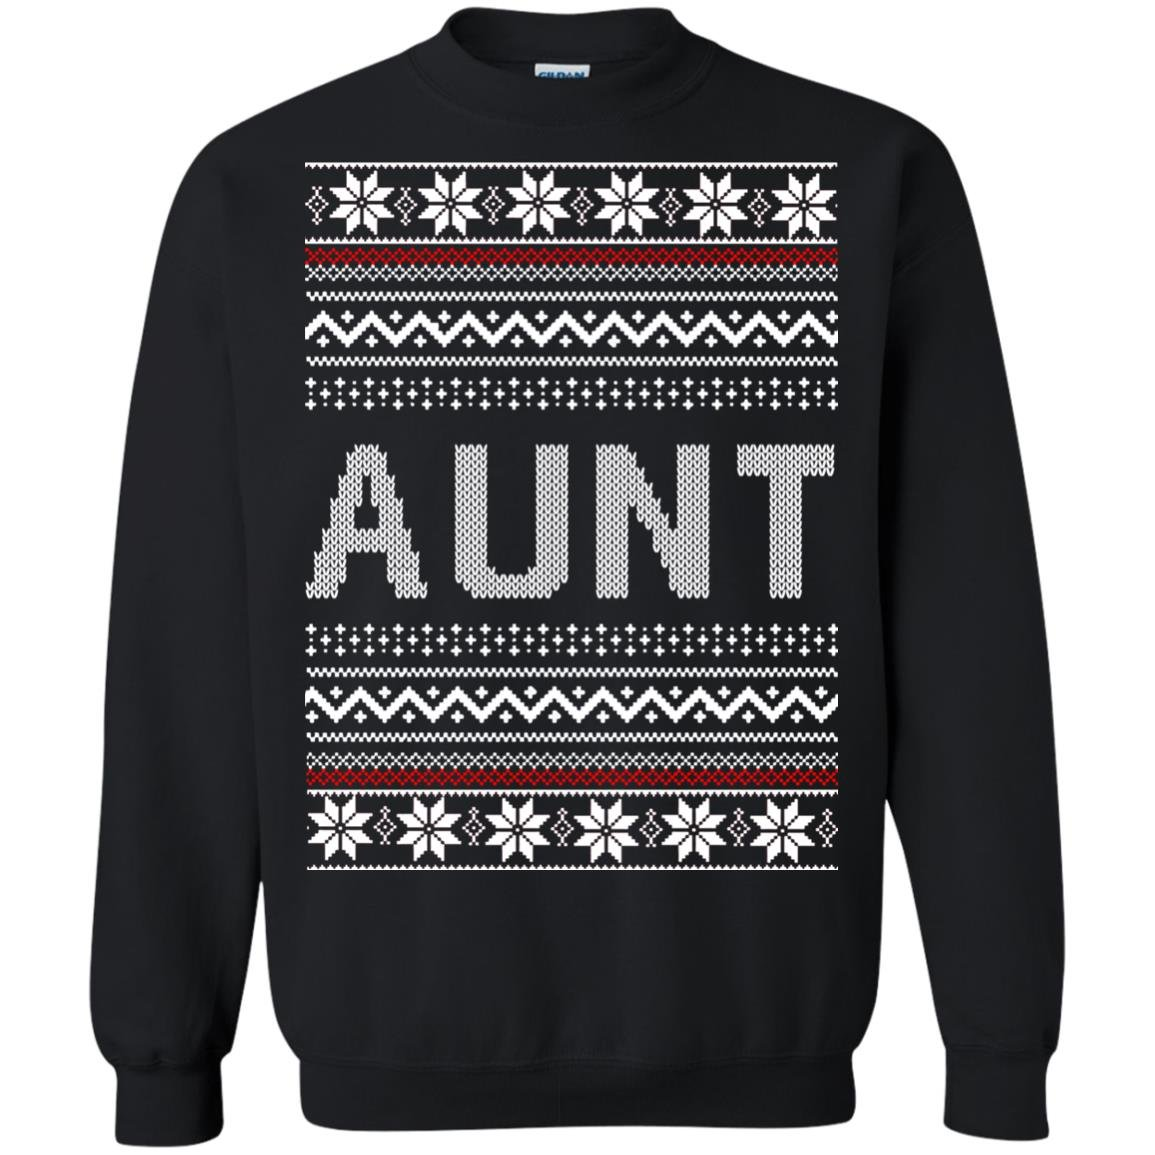 image 4617 - Aunt Ugly Christmas Sweater, Shirt, Hoodie